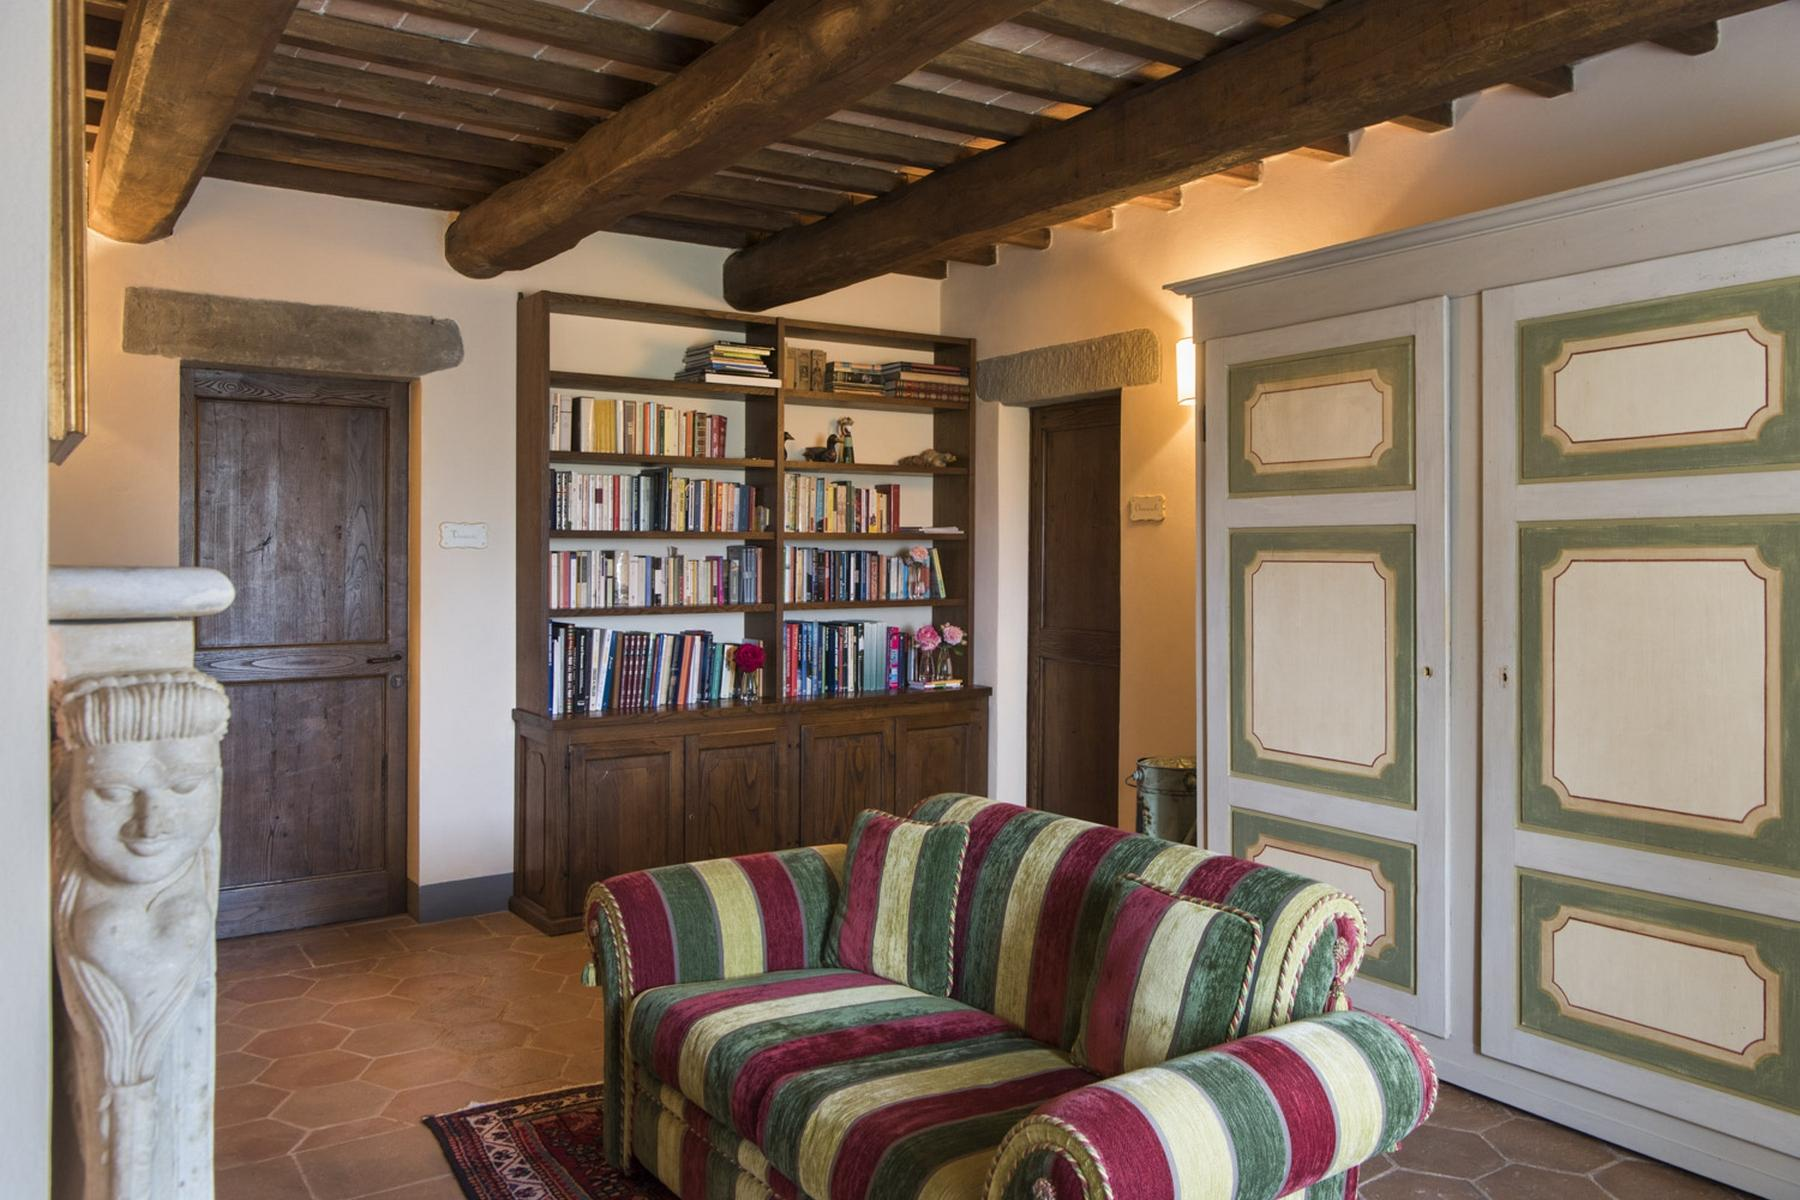 Marvellous property in the heart of Umbria Region - 4